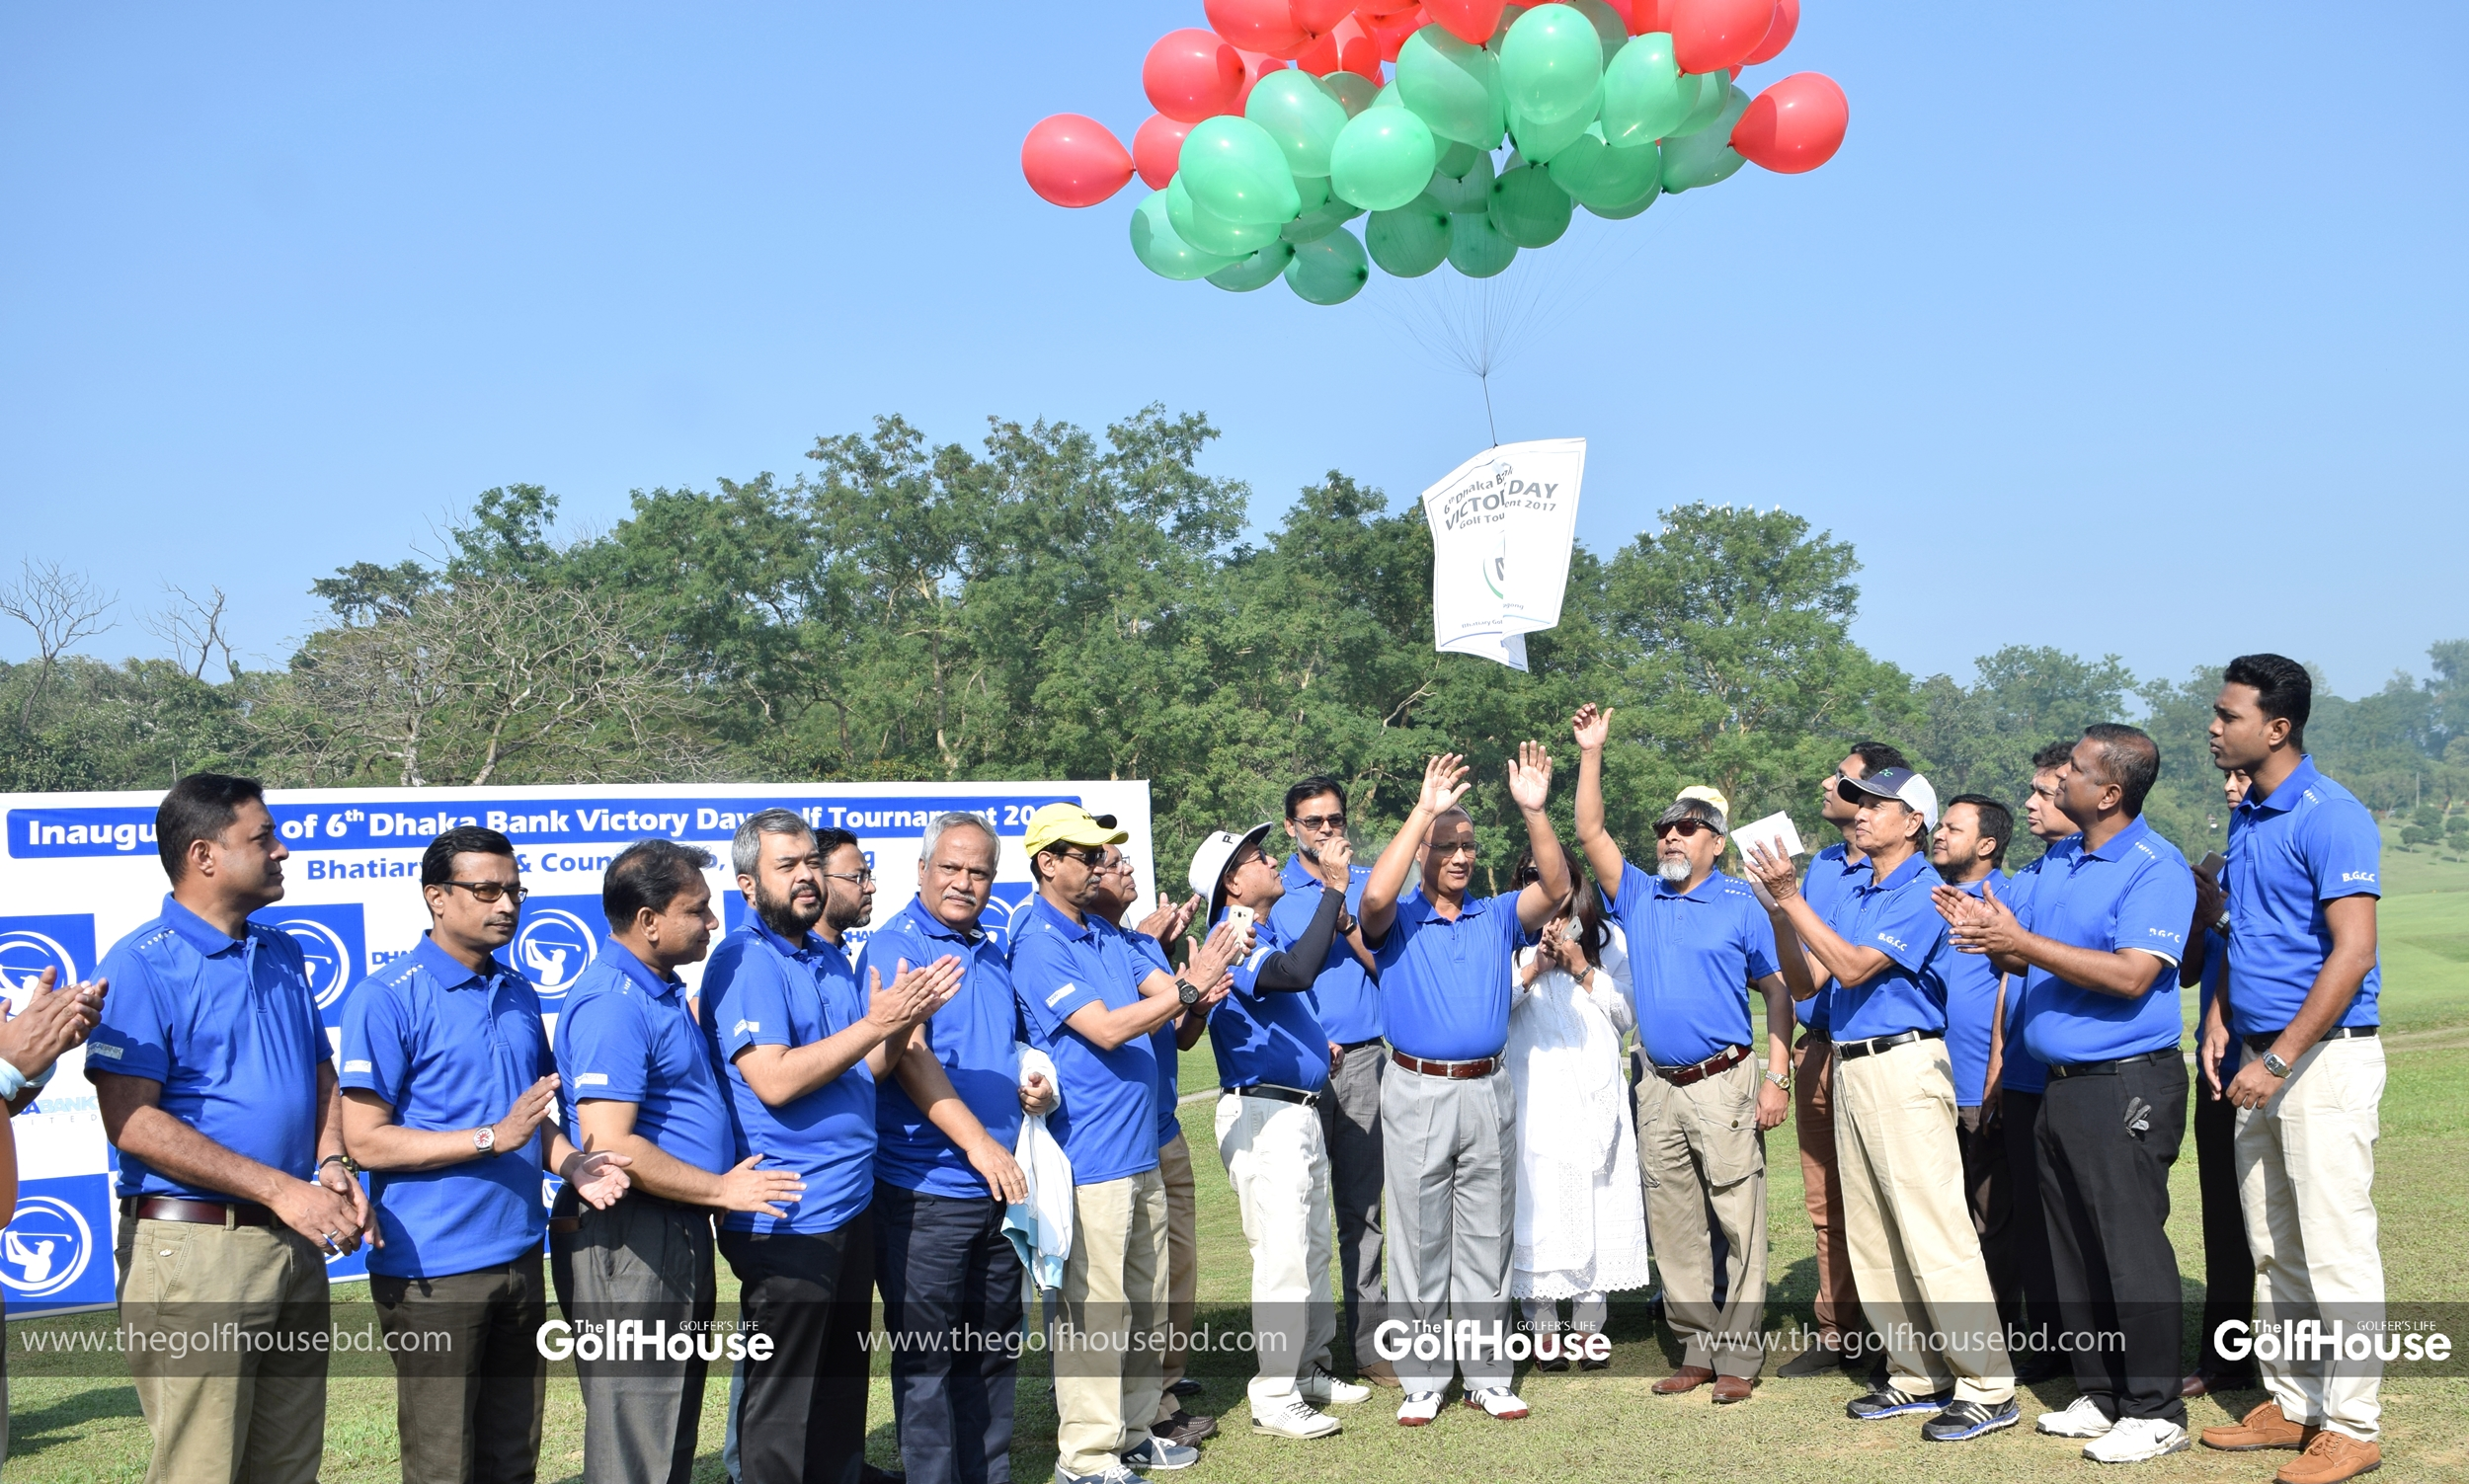 Rakibur_Rahman_clinches_6th_Dhaka_Bank_Victory_Day_Golf_Tournament_title